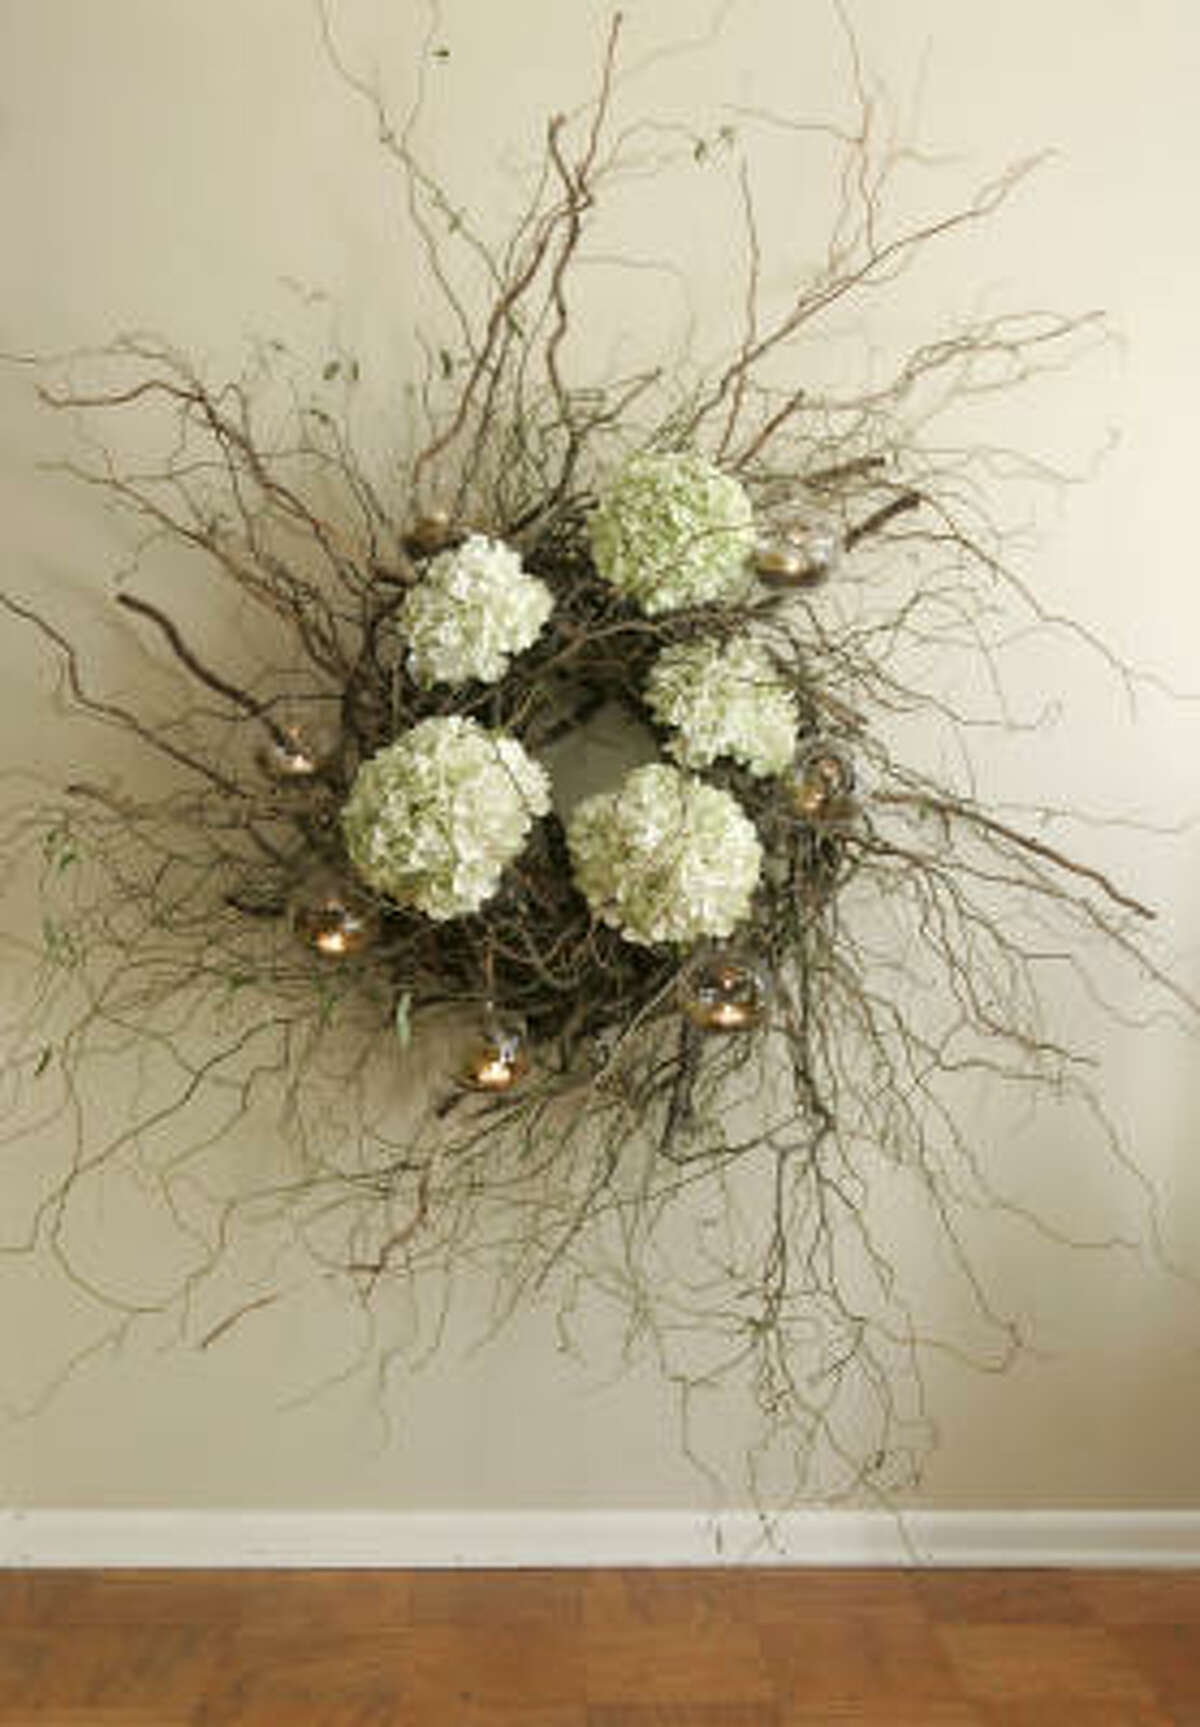 BUY: Professional florists design grander pieces to match home decor. (This one by Kenny Beall.)